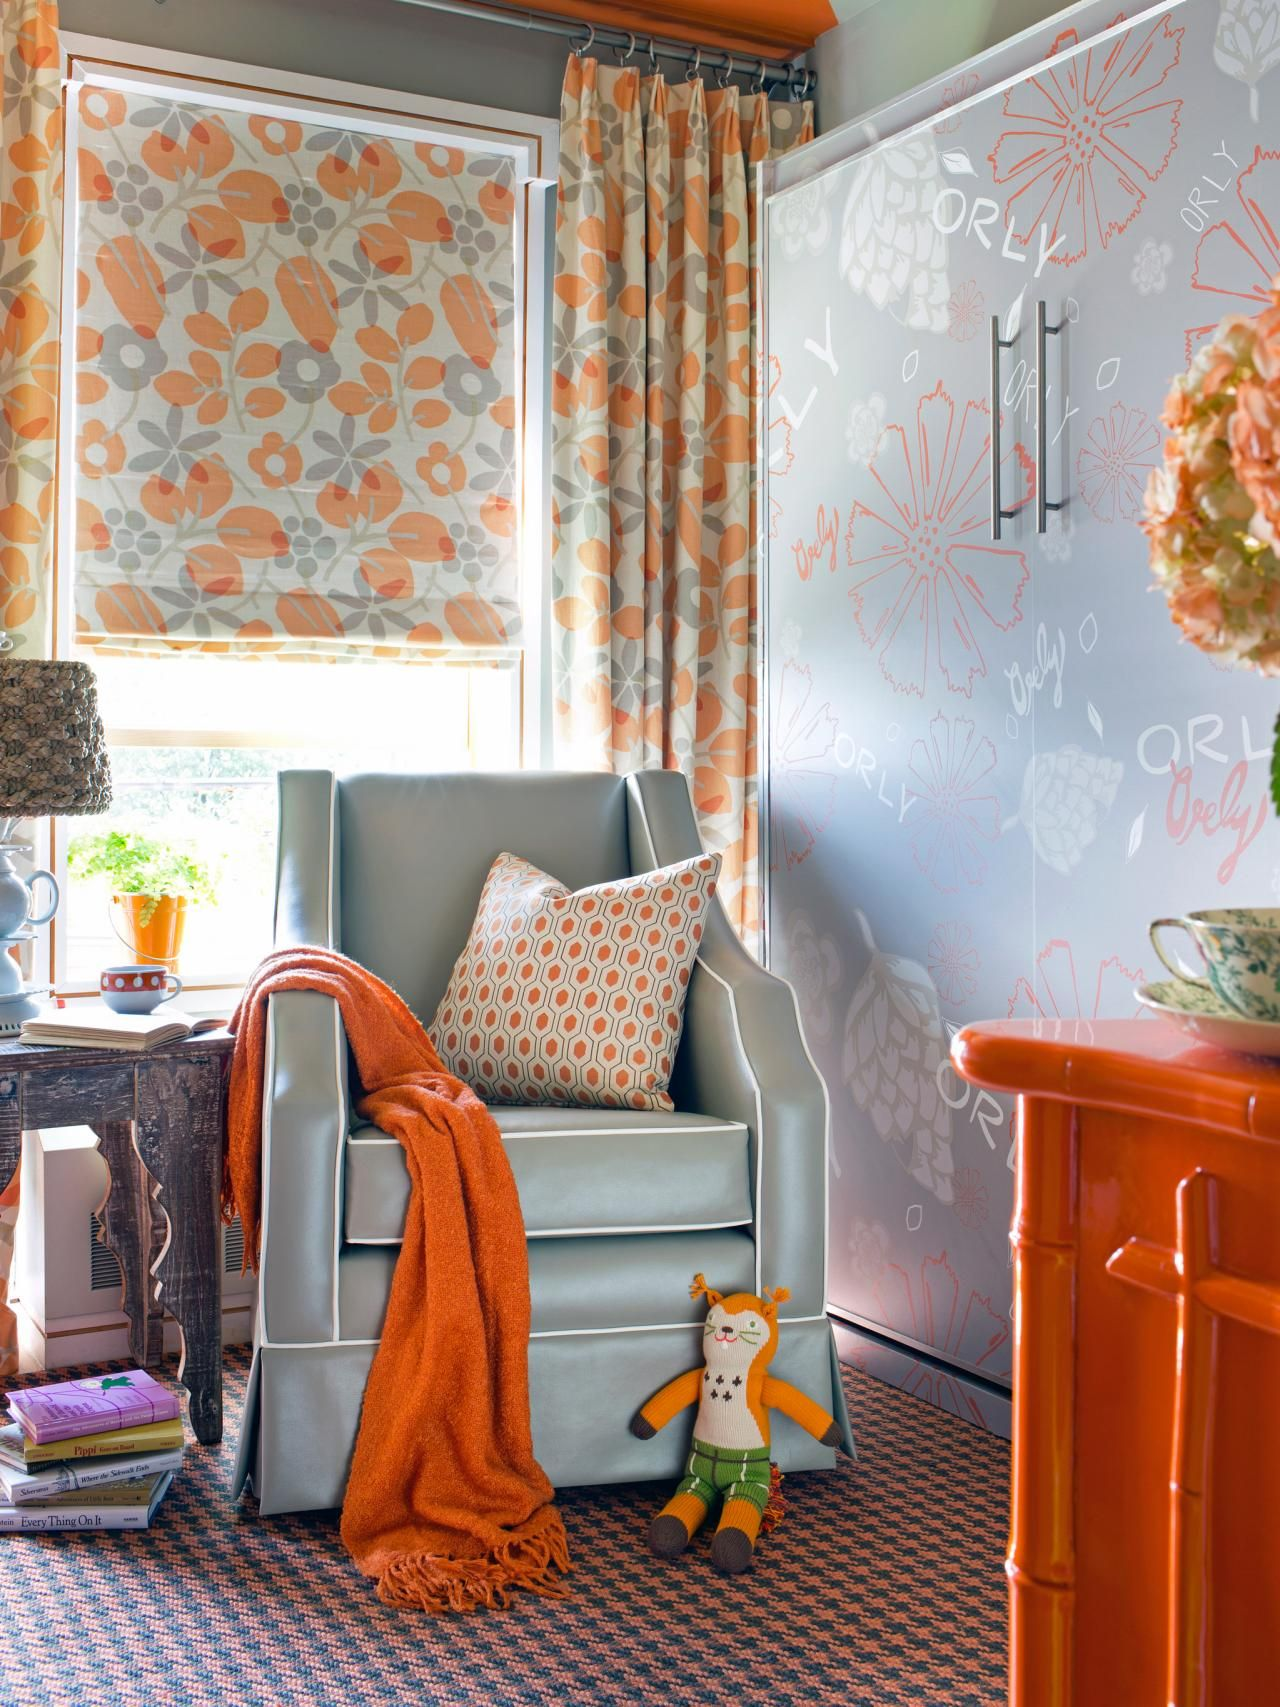 Interior Design Of Guest Room: Using One Space As A Guest Room And Nursery